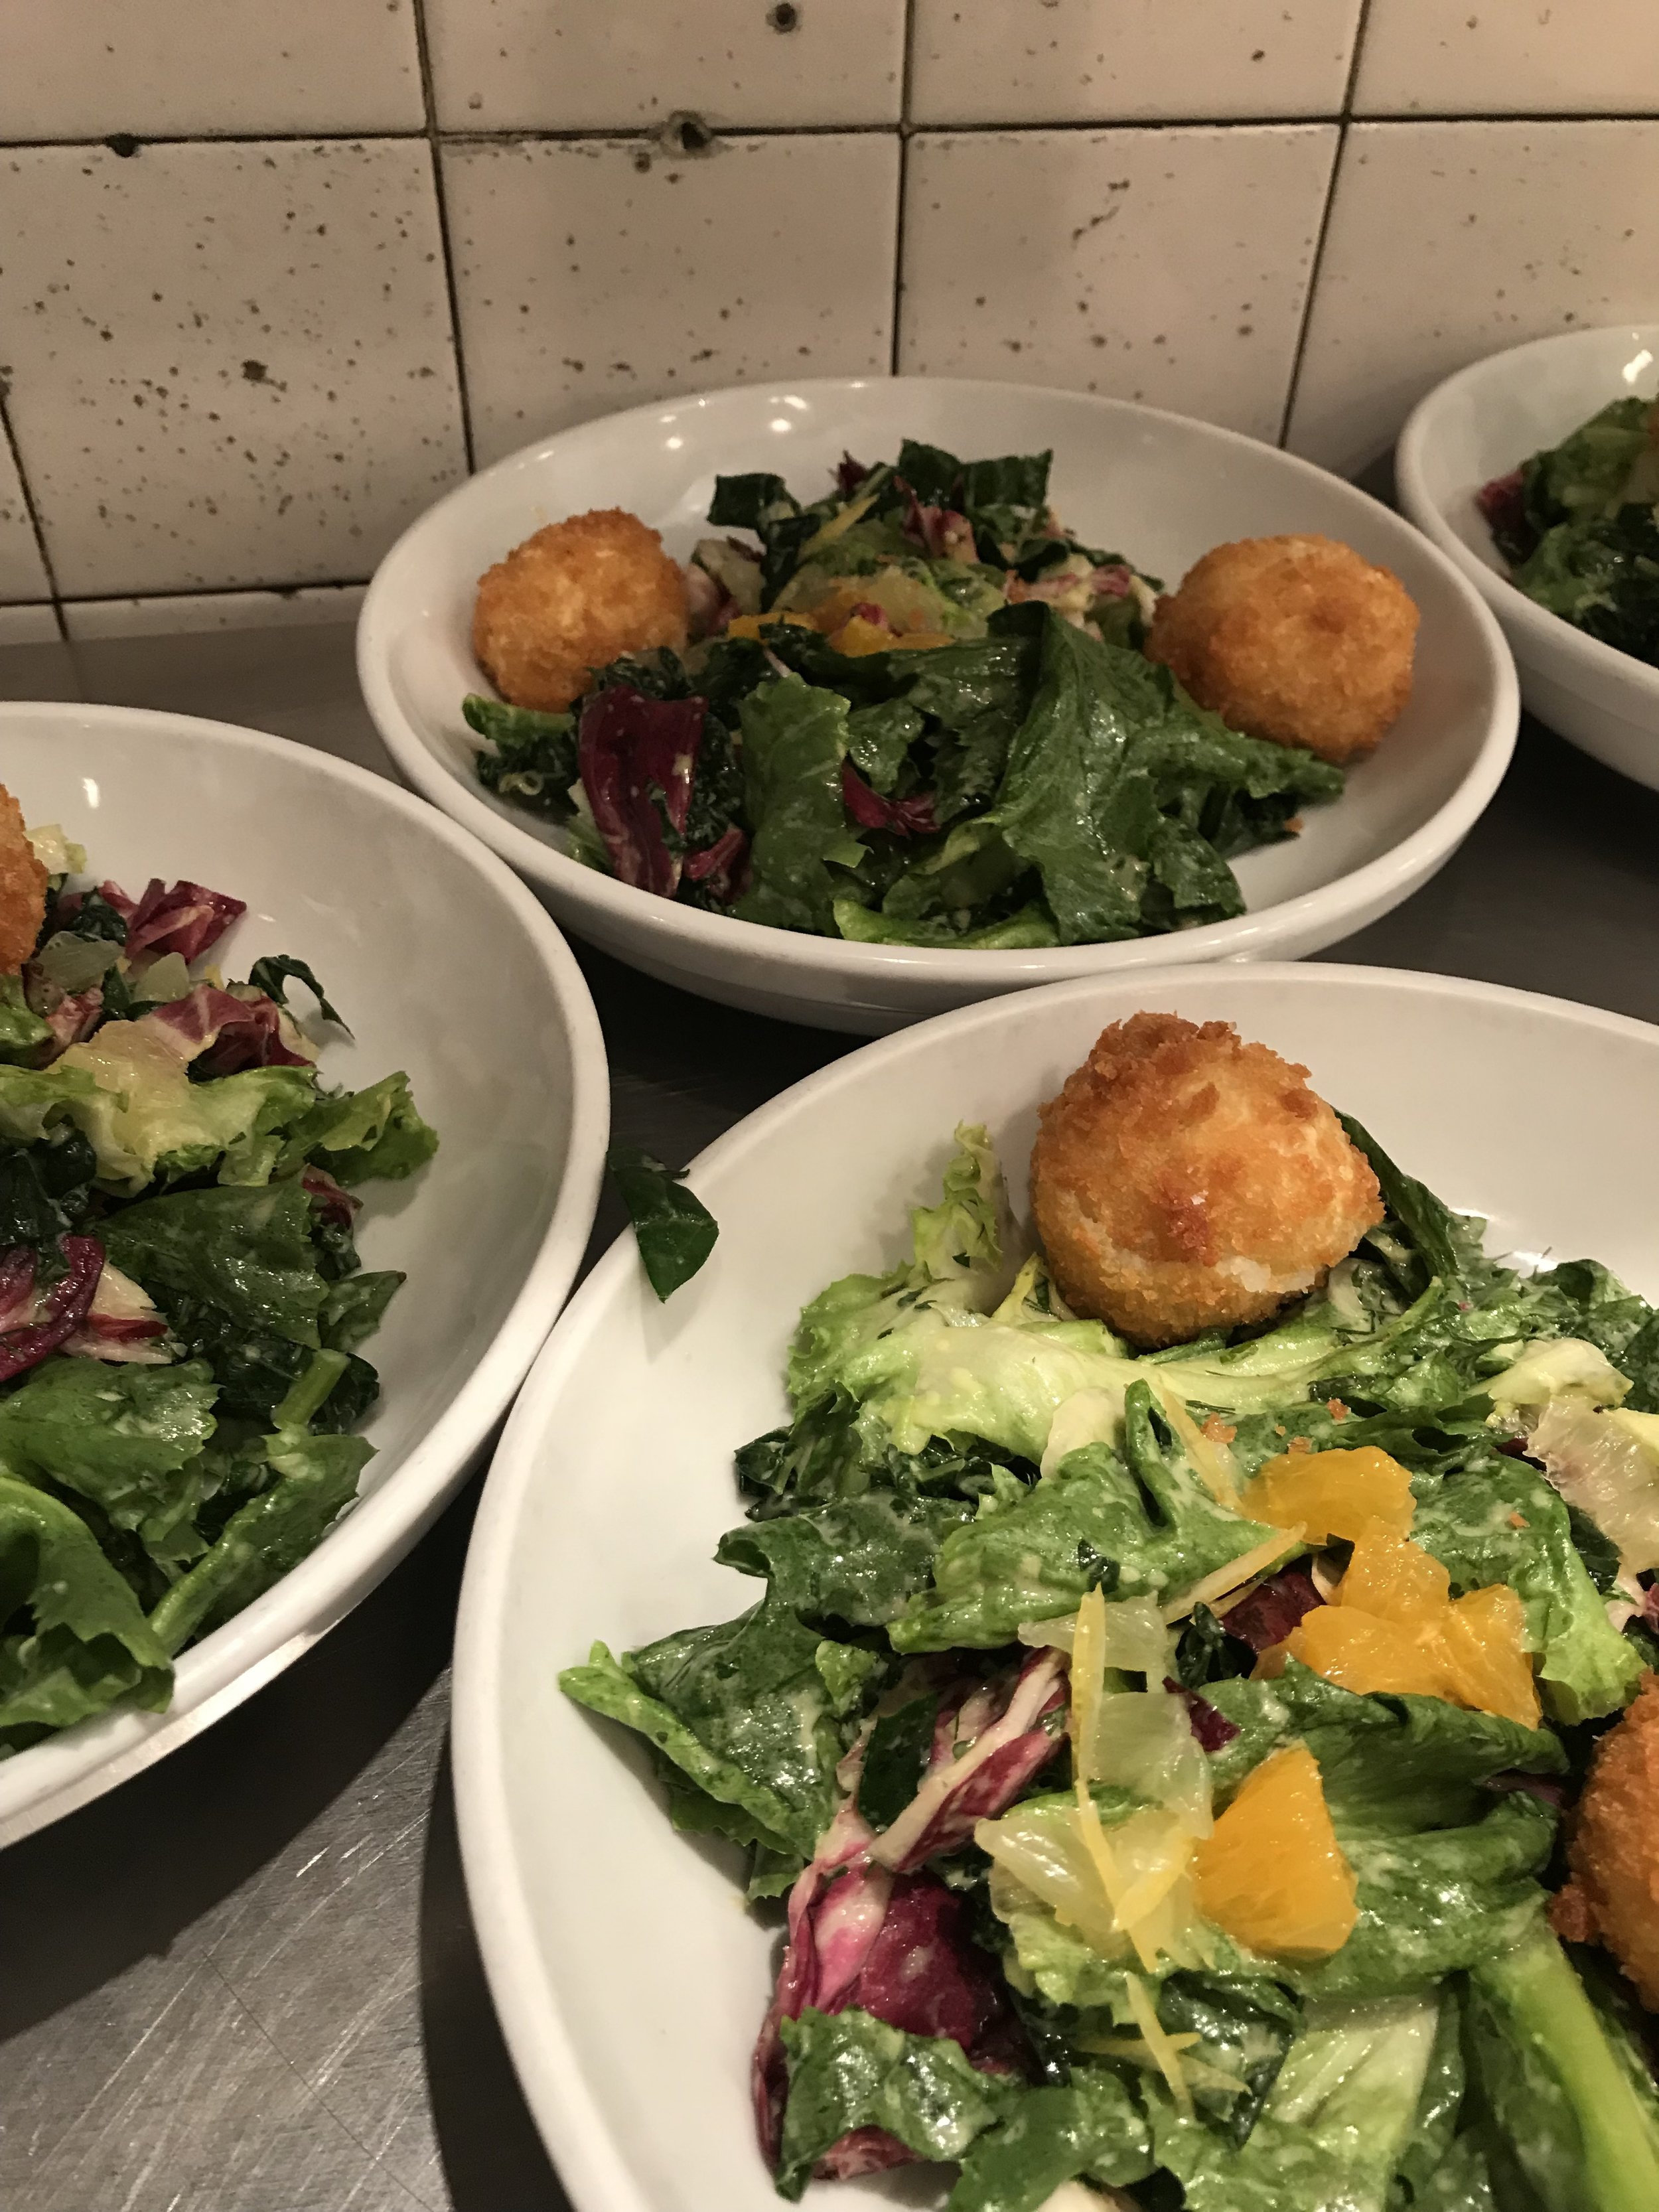 brandade fritter sous chef salad with segmented citrus/ family meal @ prune/ new york, ny  -